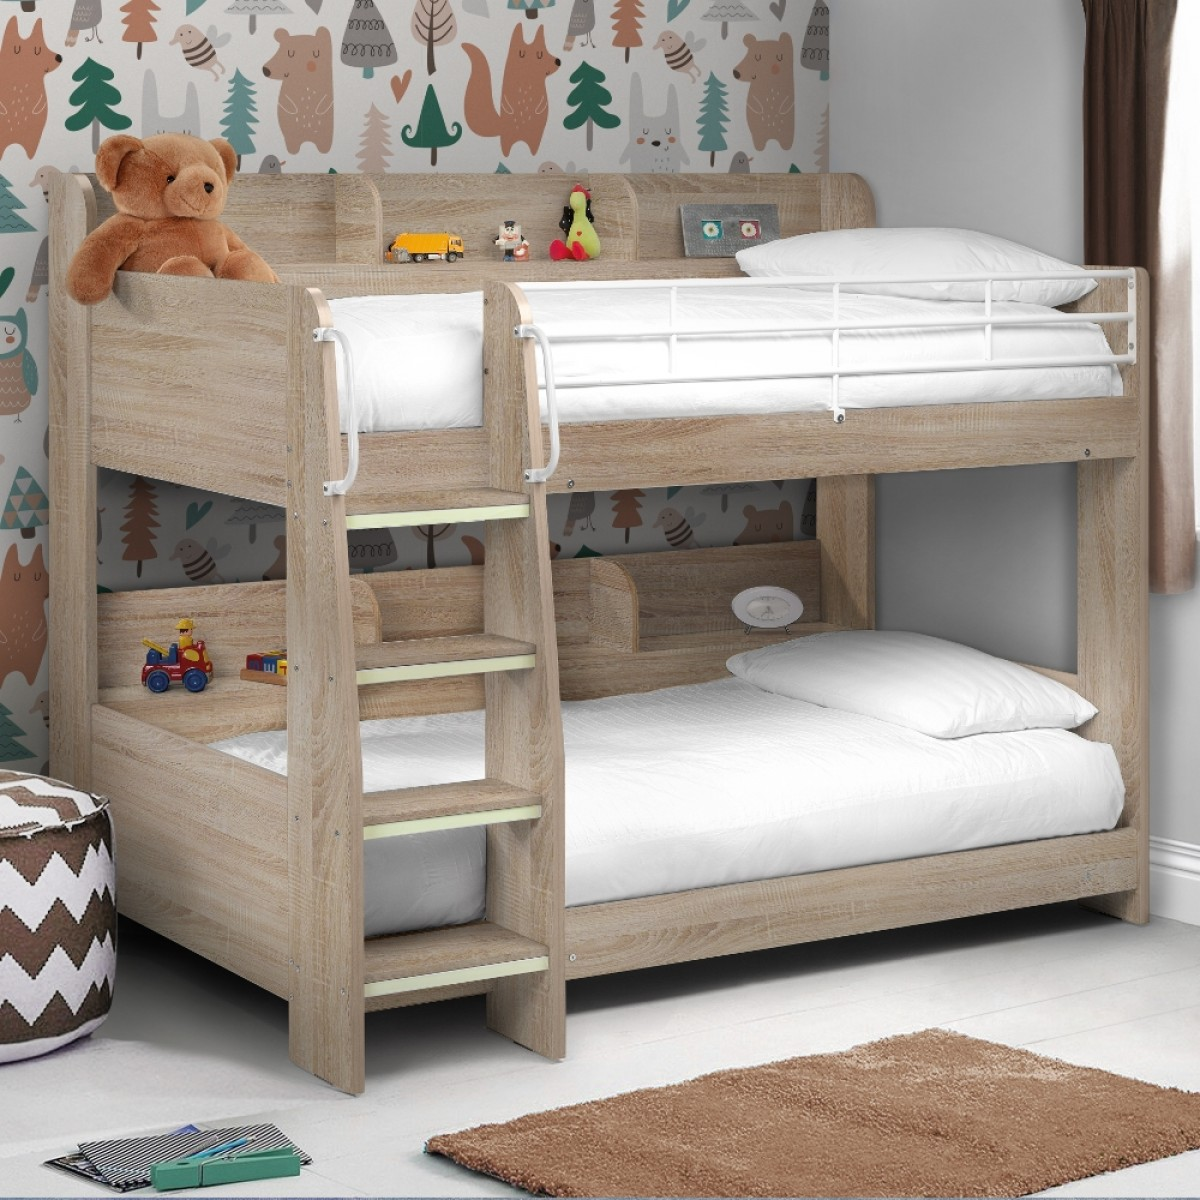 Domino Oak Wooden And Metal Kids Storage Bunk Bed